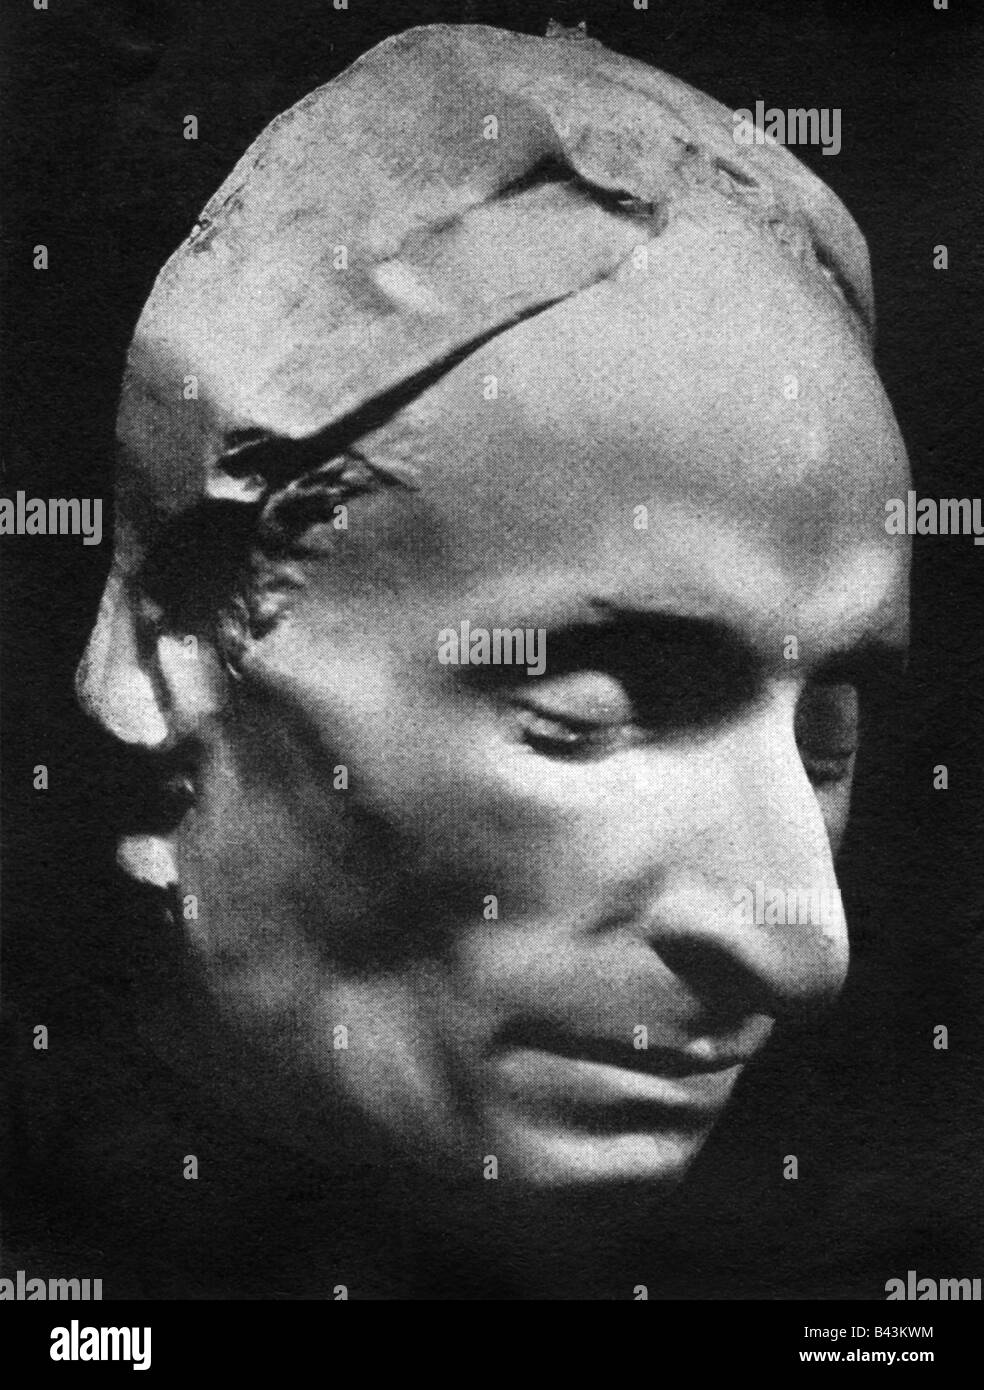 Pascal, Blaise, 19.6.1623 - 19.8.1662, French mathematician, philosopher and physicist, death-mask, Additional-Rights - Stock Image